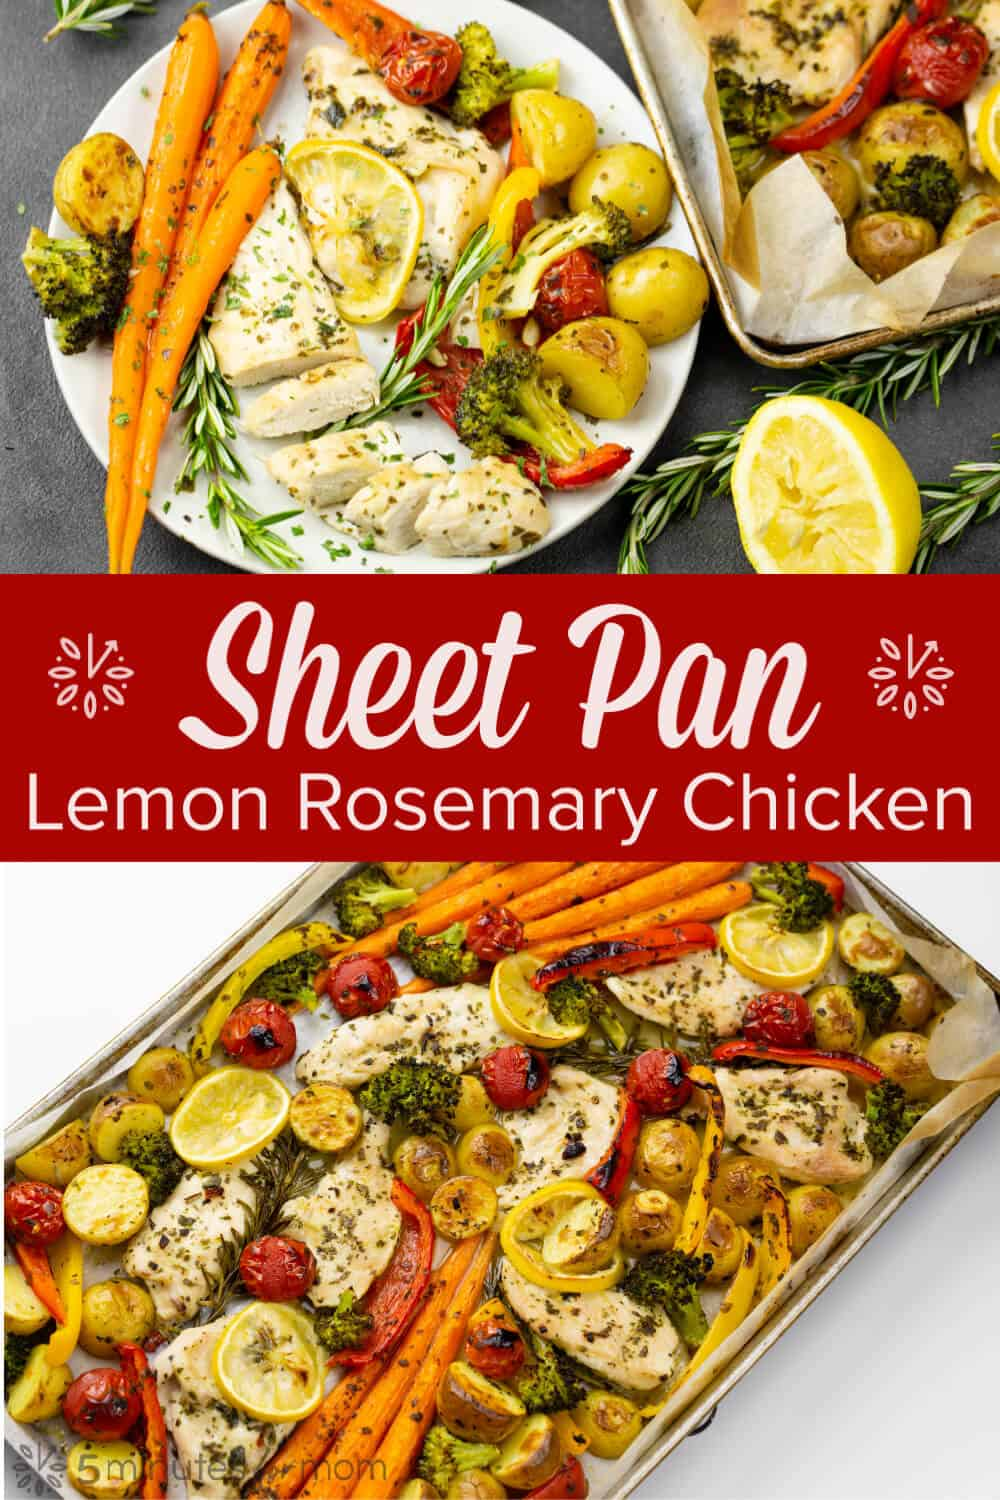 Sheet Pan Lemon Rosemary Chicken - Easy One Pan Dinner